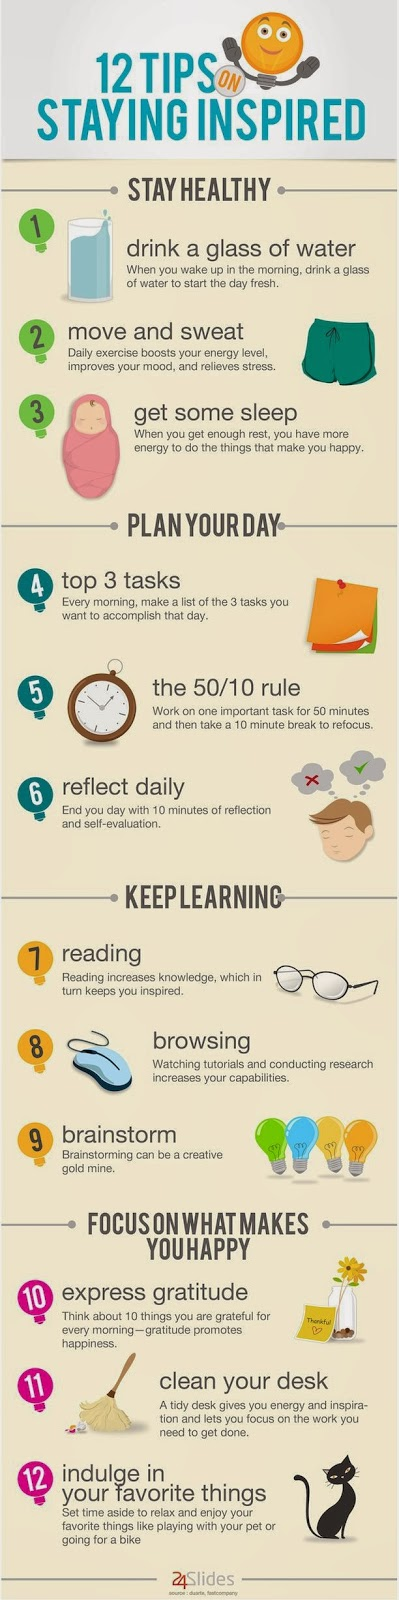 """12 Tips on staying inspired. Drink water, move, sleep, finish 3 tasks a day, take 10 minute break every 50min, reflect daily, read, learn, brainstorm, express gratitude, clean your work space, relax and enjoy"